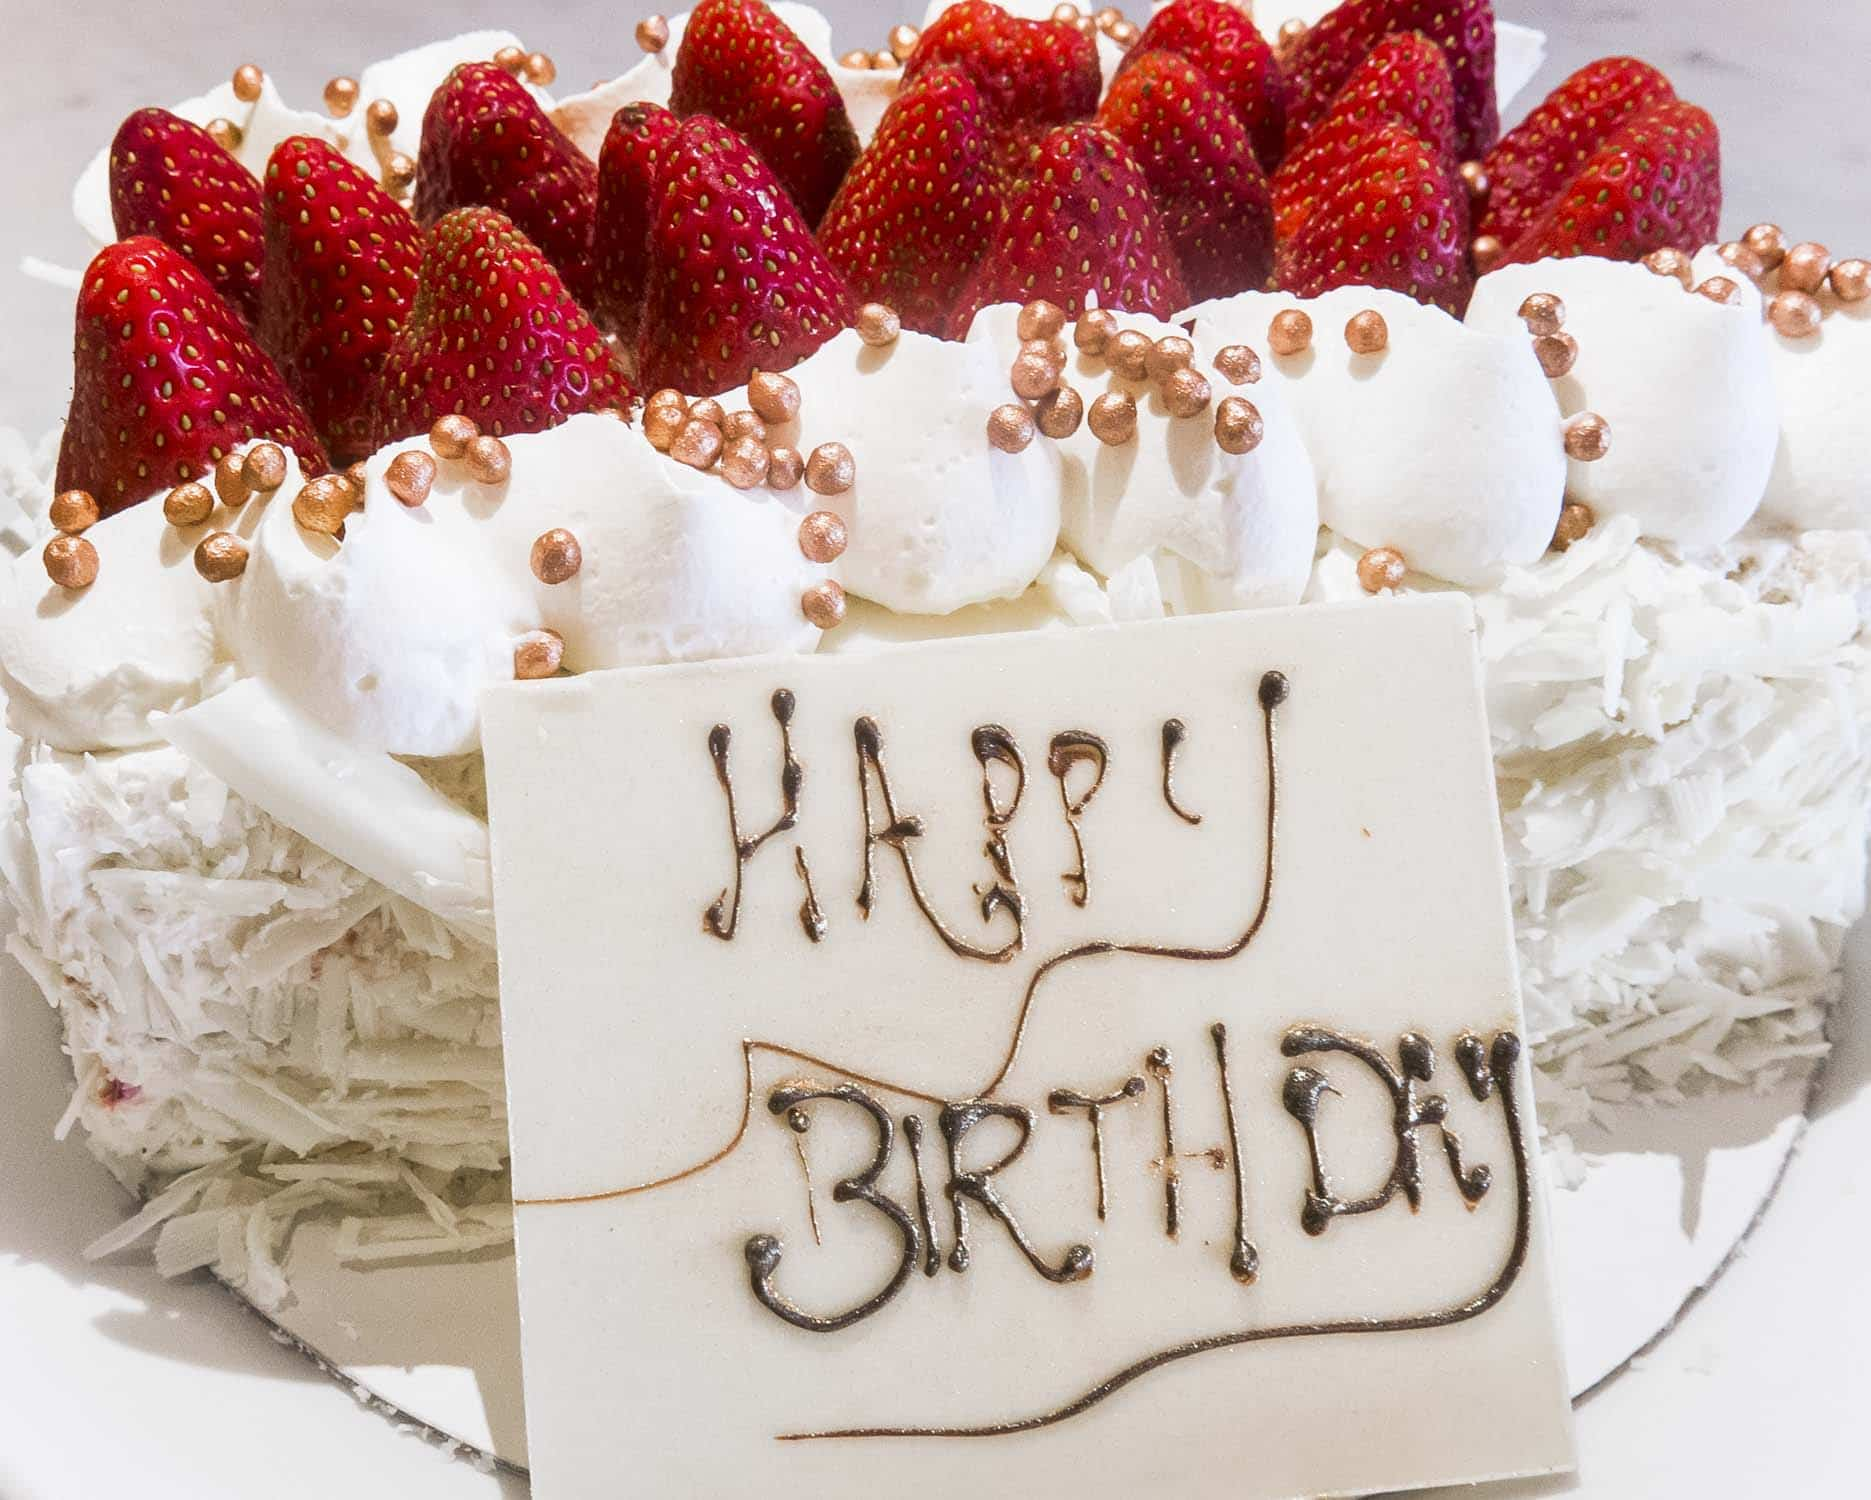 Best Birthday Cakes to order Perth